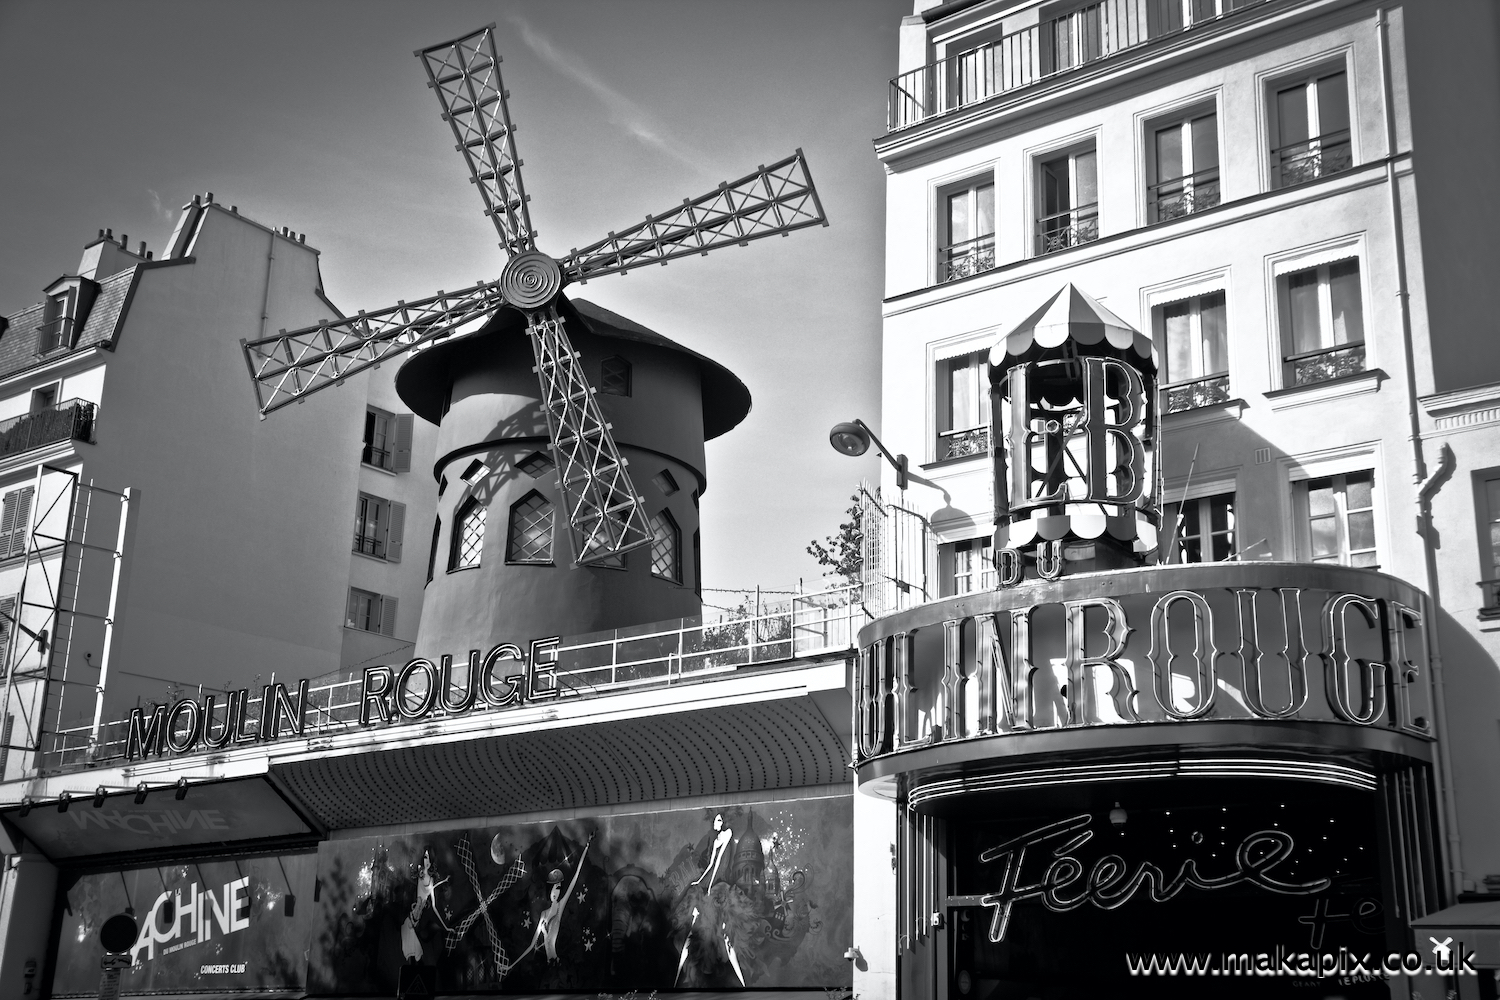 Moulin Rouge cabaret in Paris, France